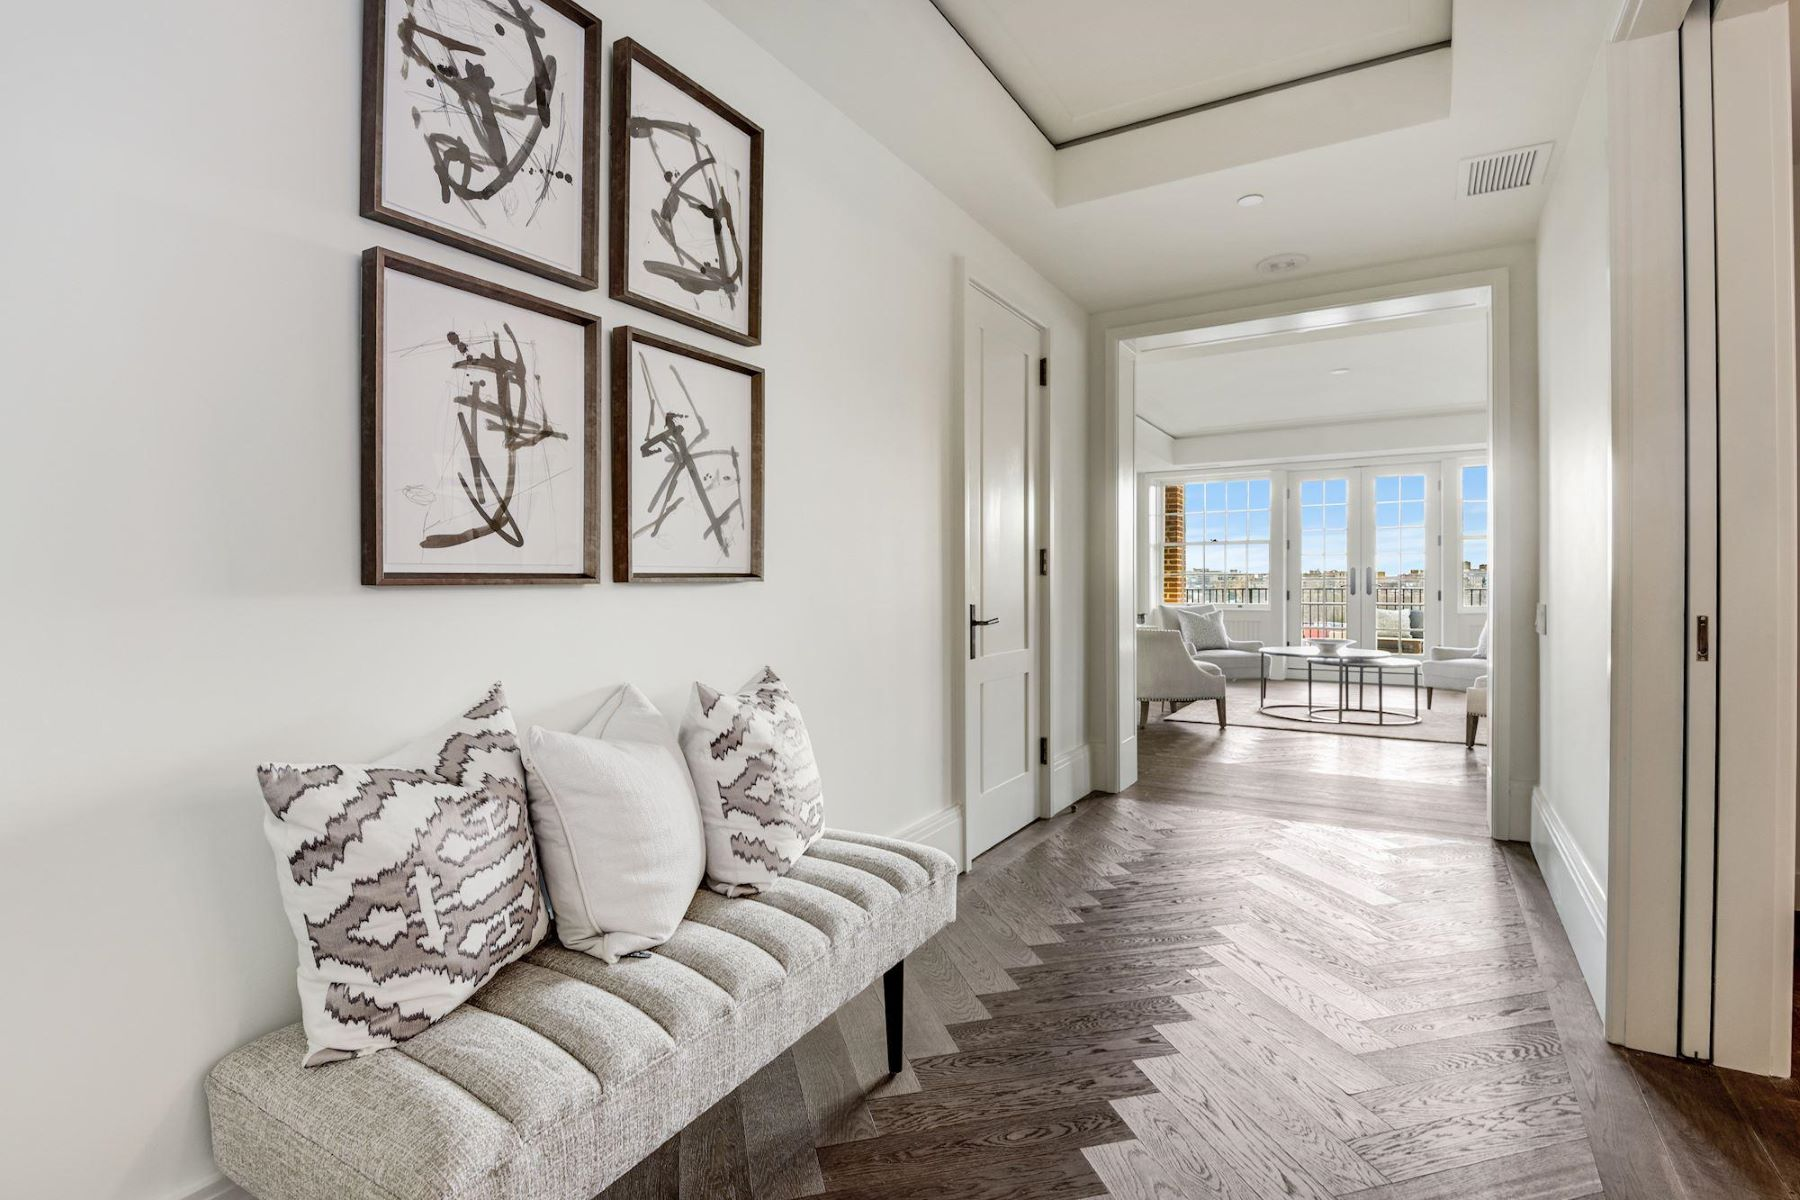 Condominium for Sale at 2660 Connecticut Ave NW #3c Washington, District Of Columbia 20008 United States